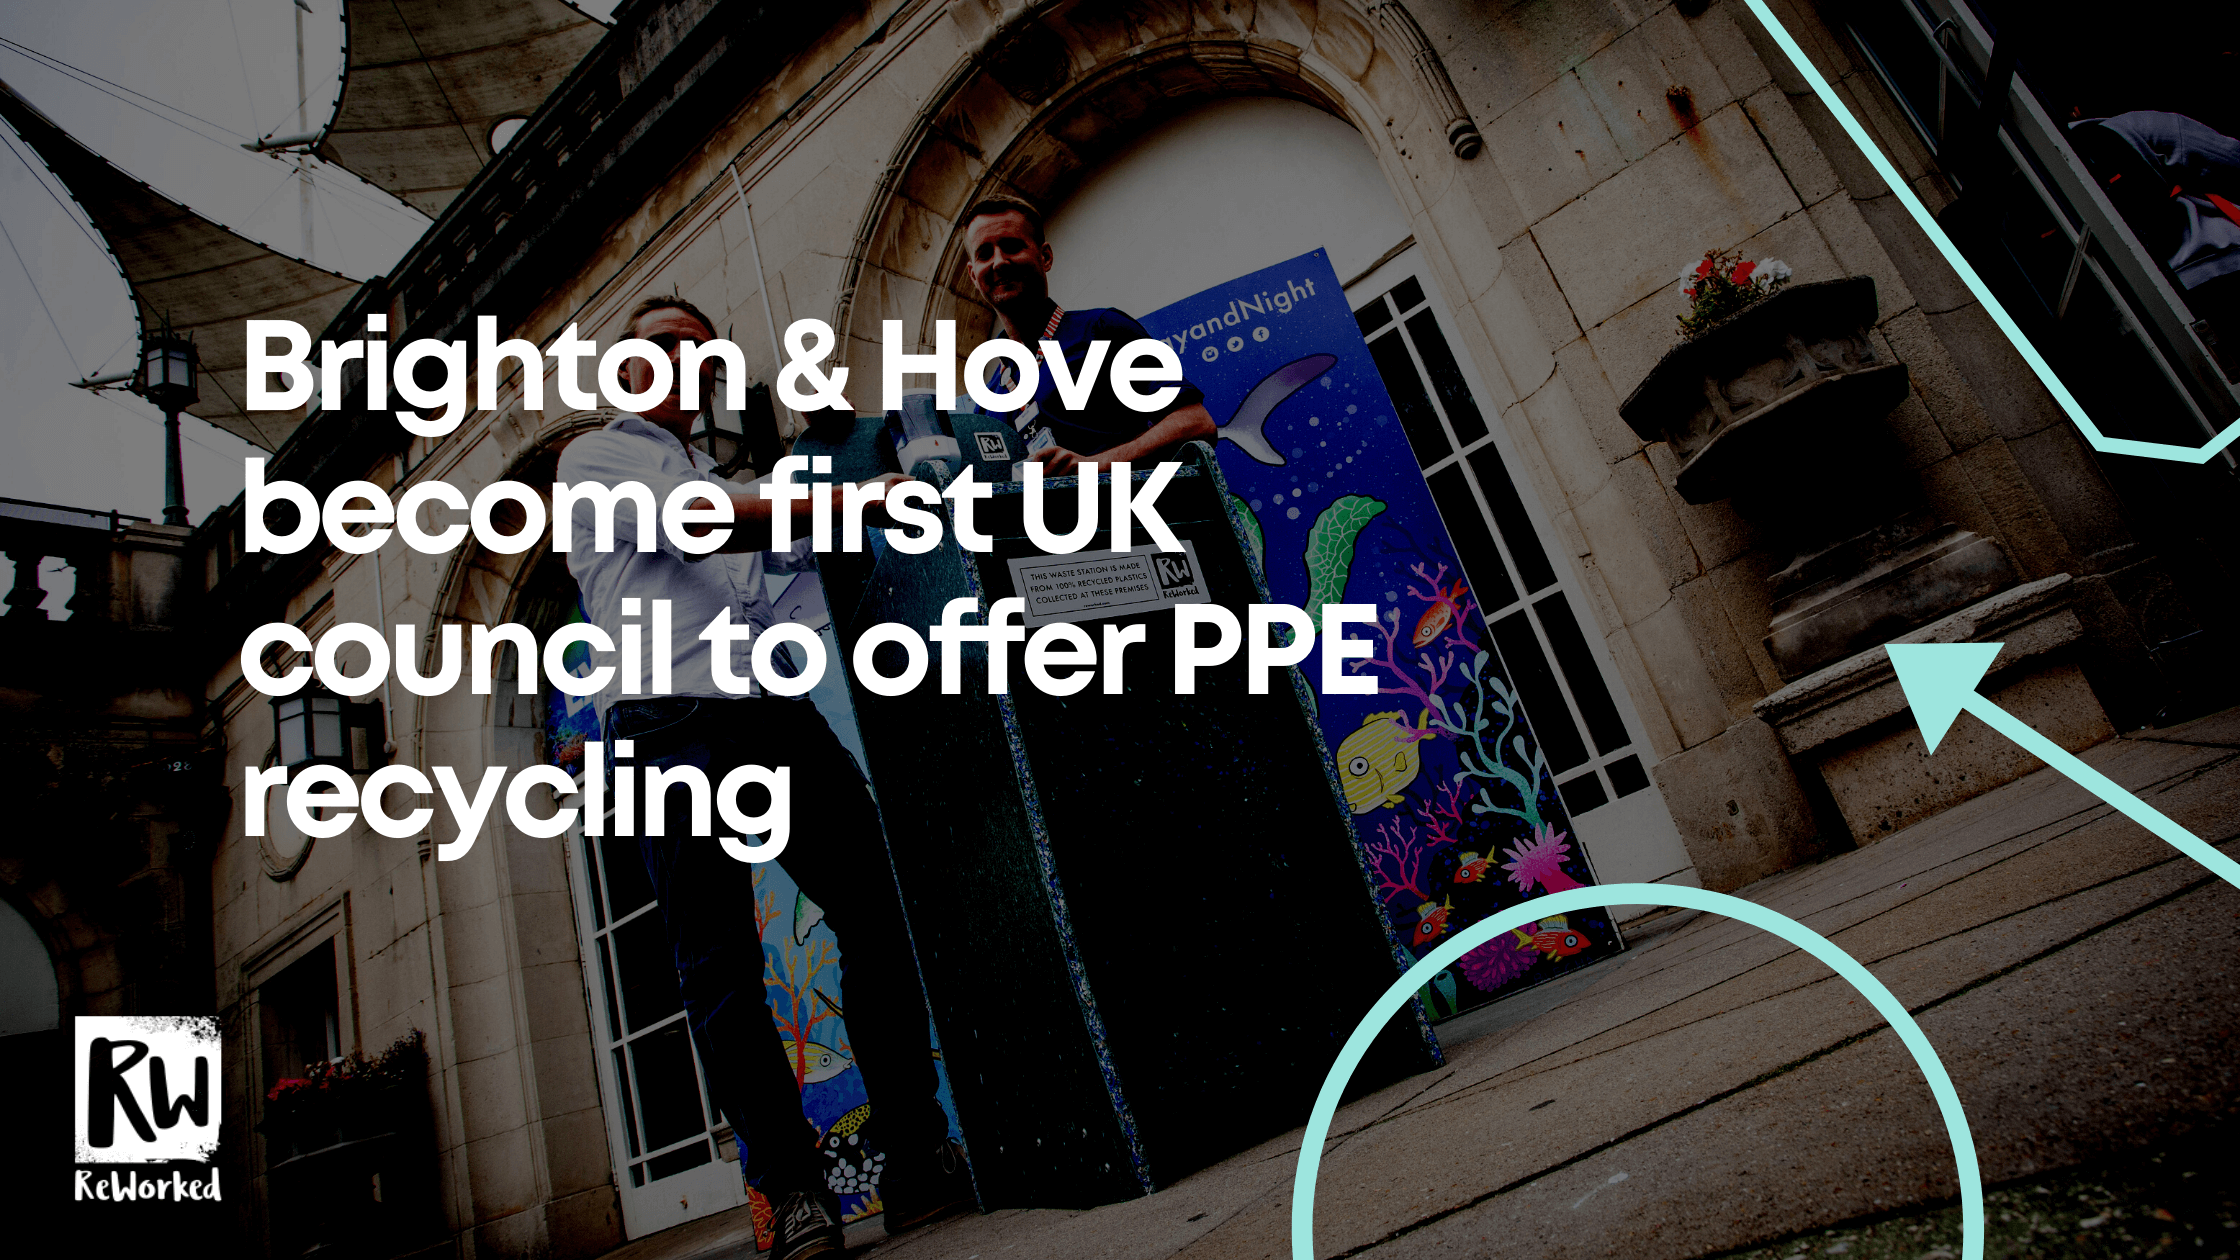 Brighton & Hove become first UK council to offer PPE recycling